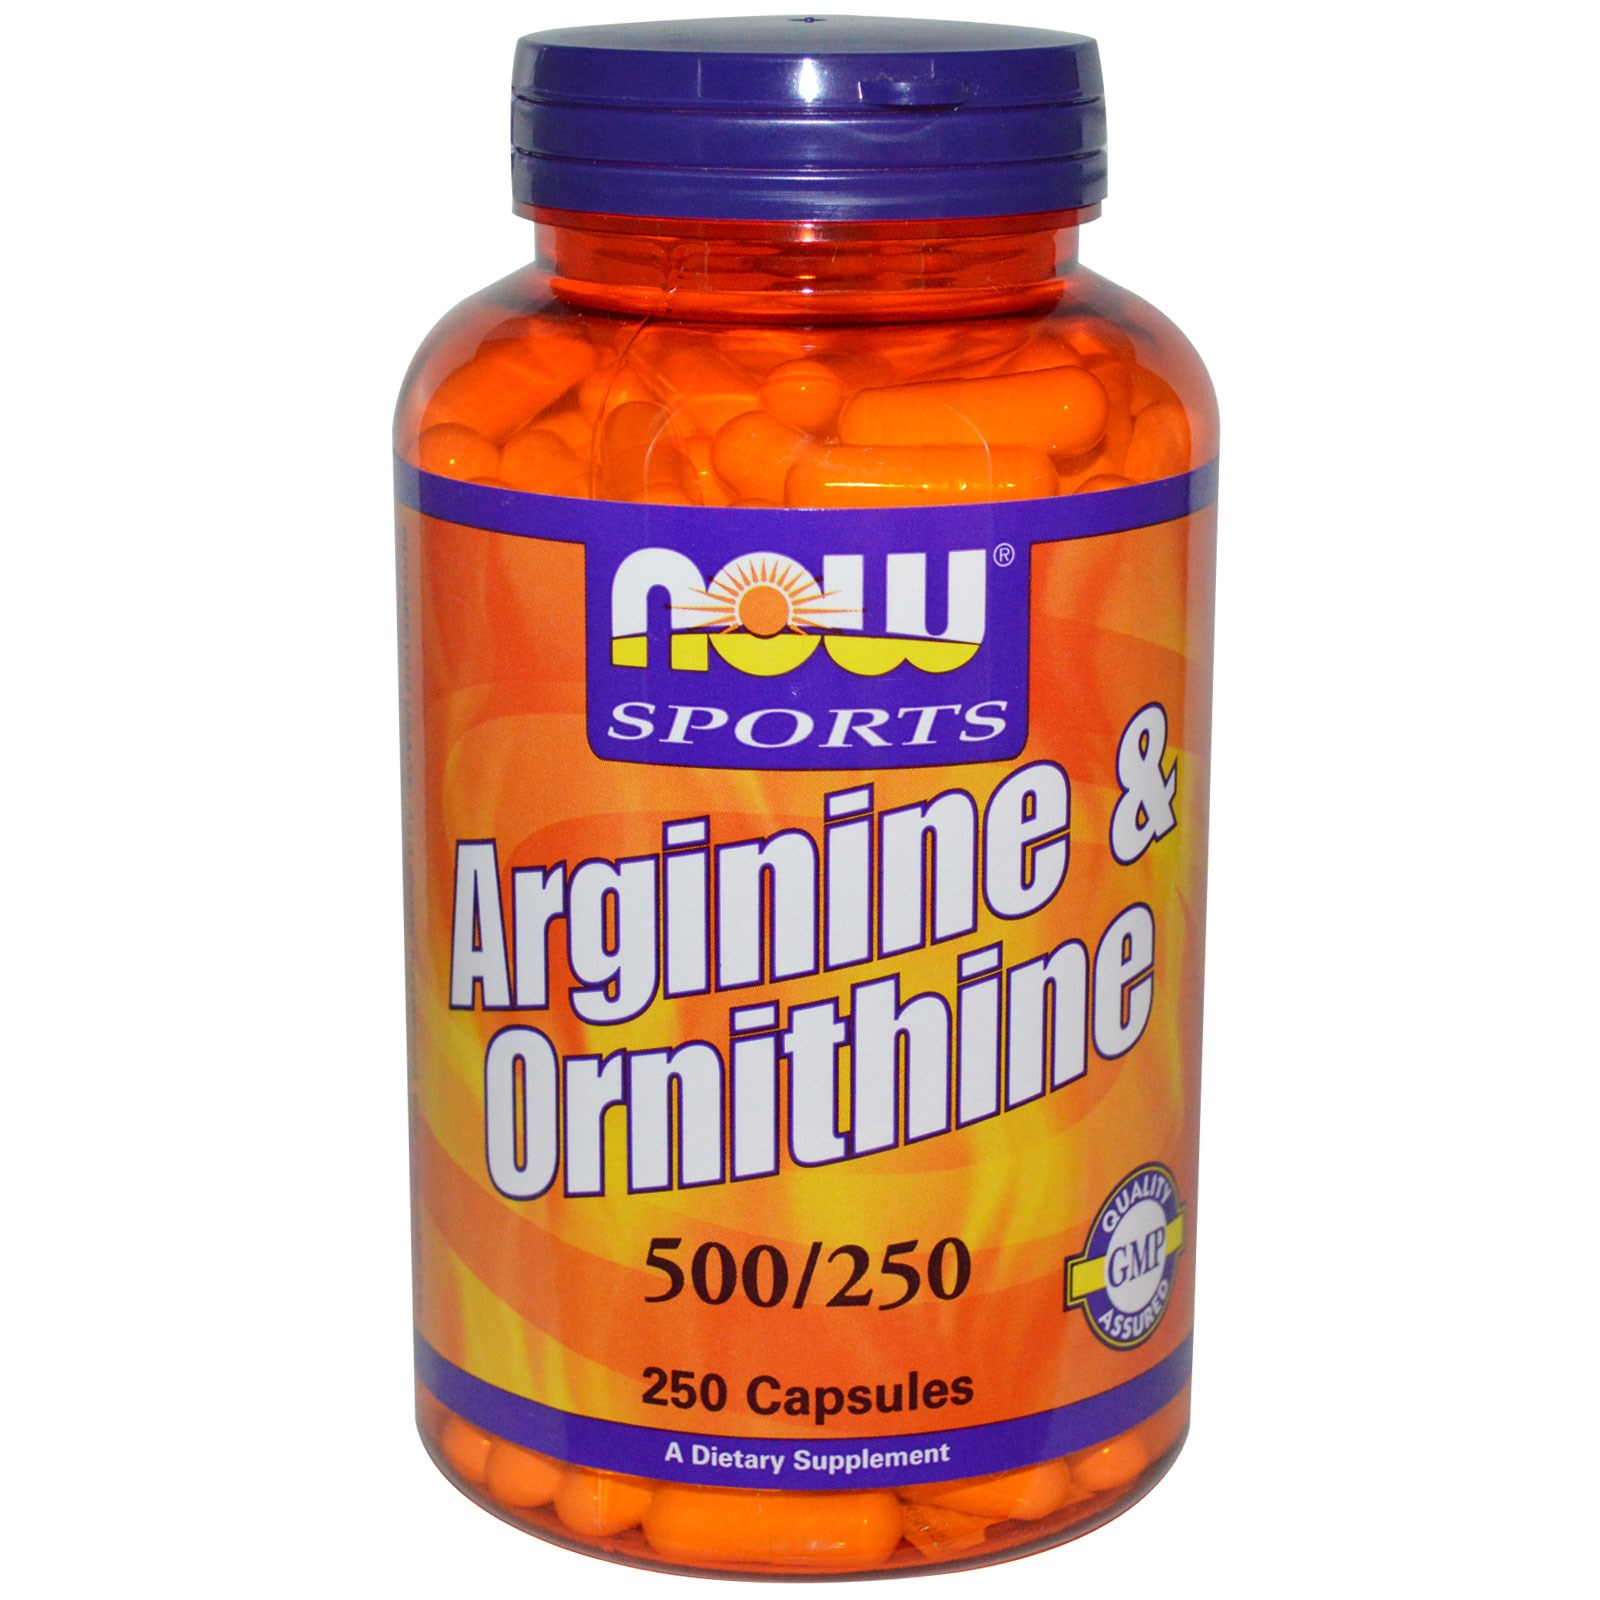 NOW Arginine Ornithine